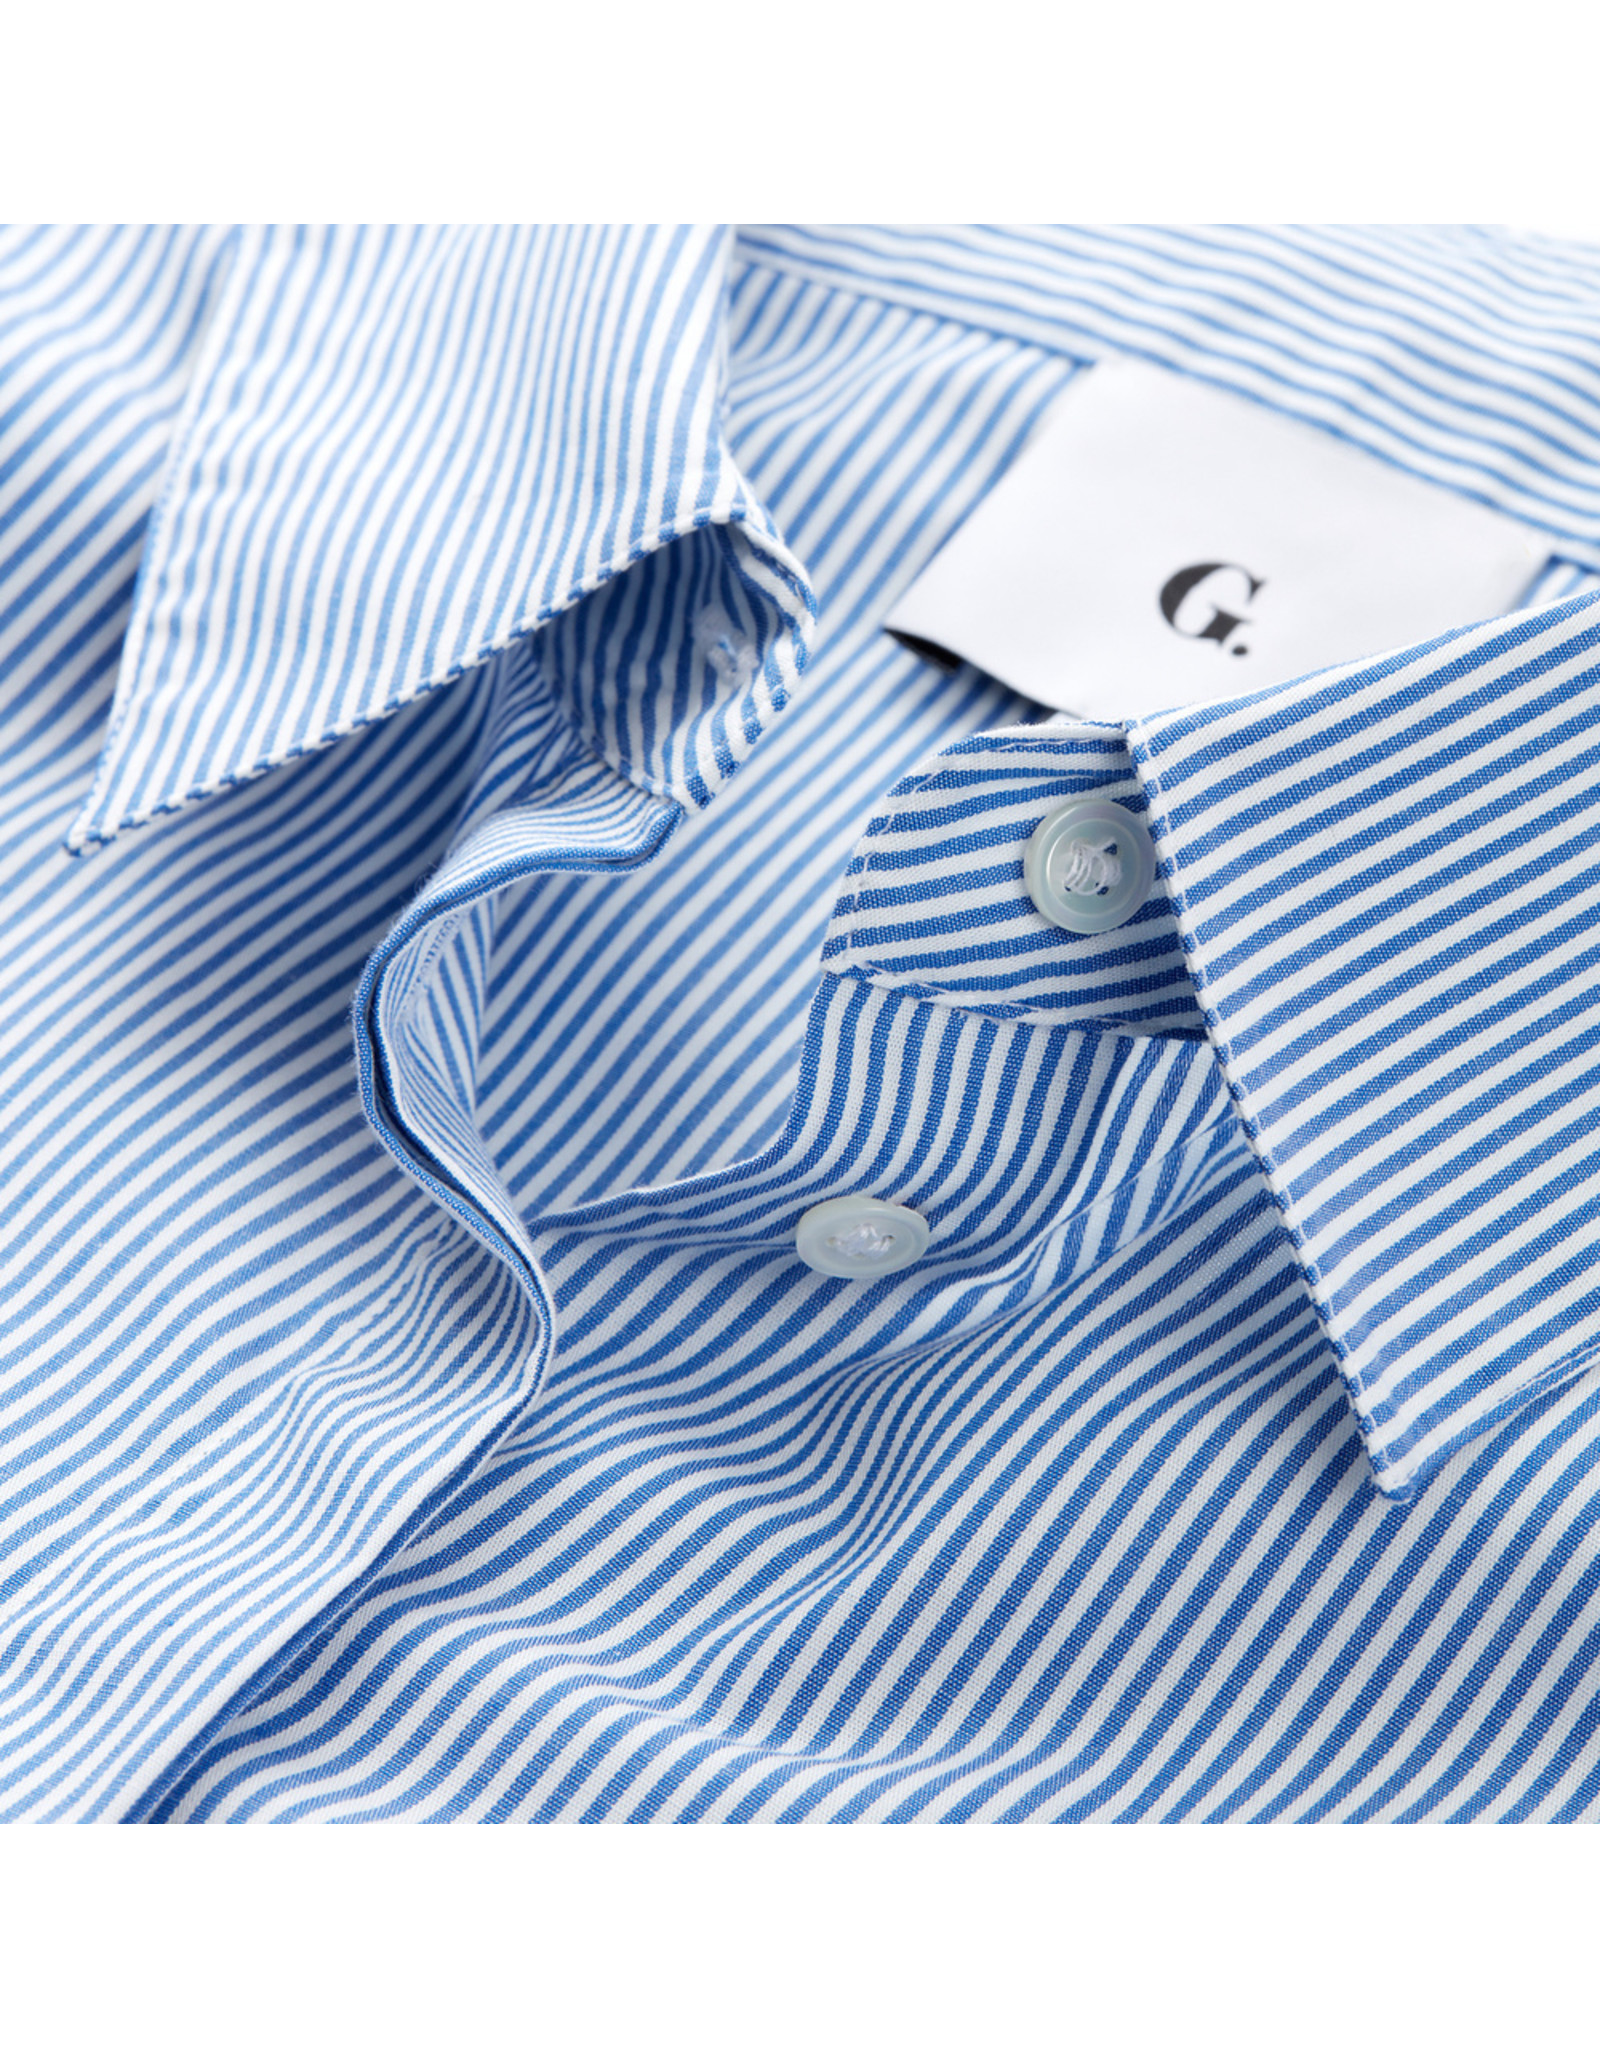 G. Label G. Label Nicole Puff-Sleeve Button-Down with Collar (Size: 10, Color: Blue/White Stripe)